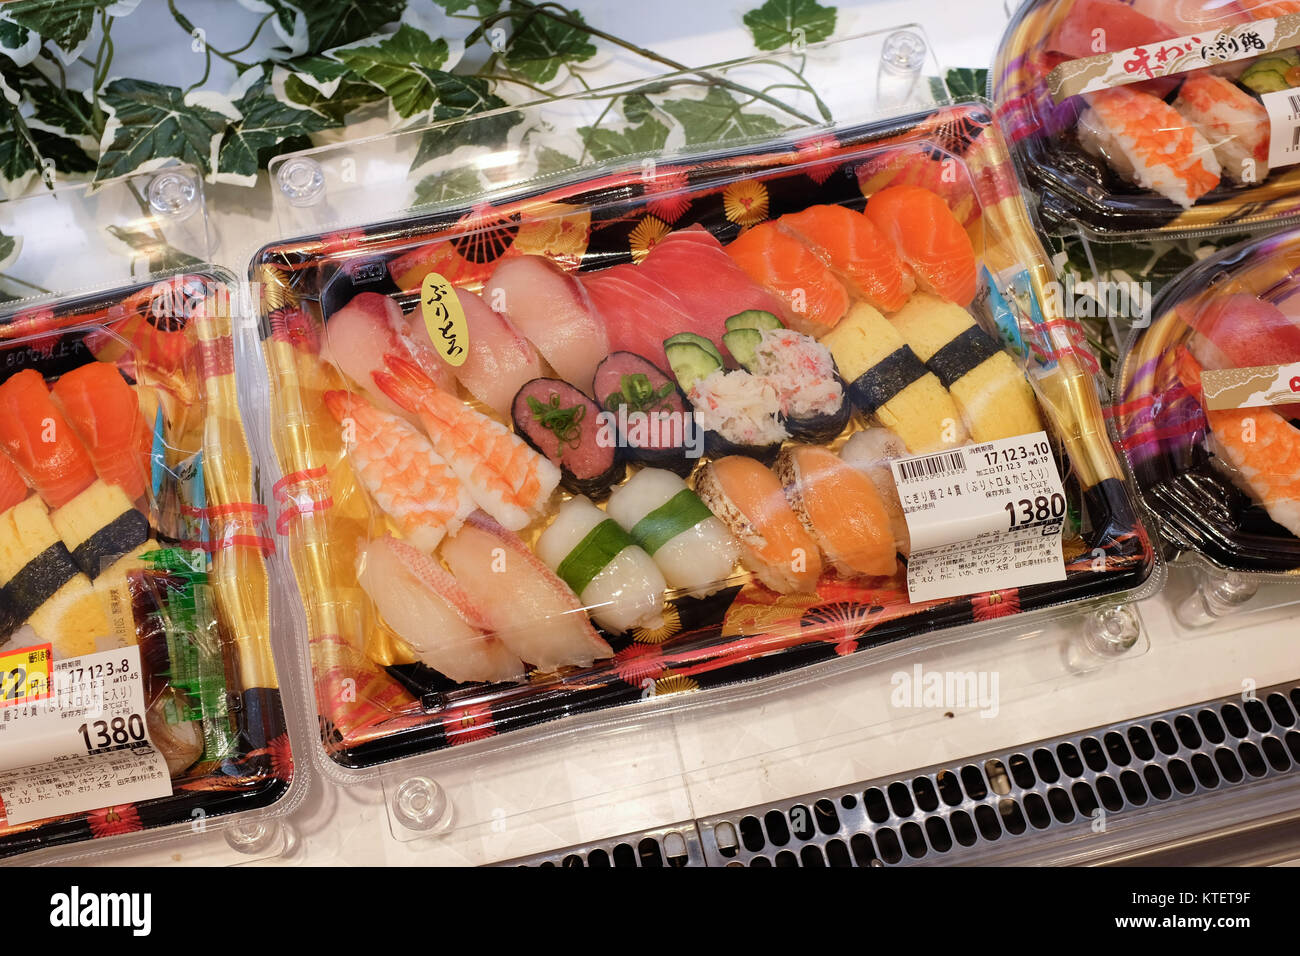 Sushi For Sale In A Supermarket In Japan Stock Photo Alamy Welcome to sushi 99 japanese restaurant. https www alamy com stock image sushi for sale in a supermarket in japan 169971467 html